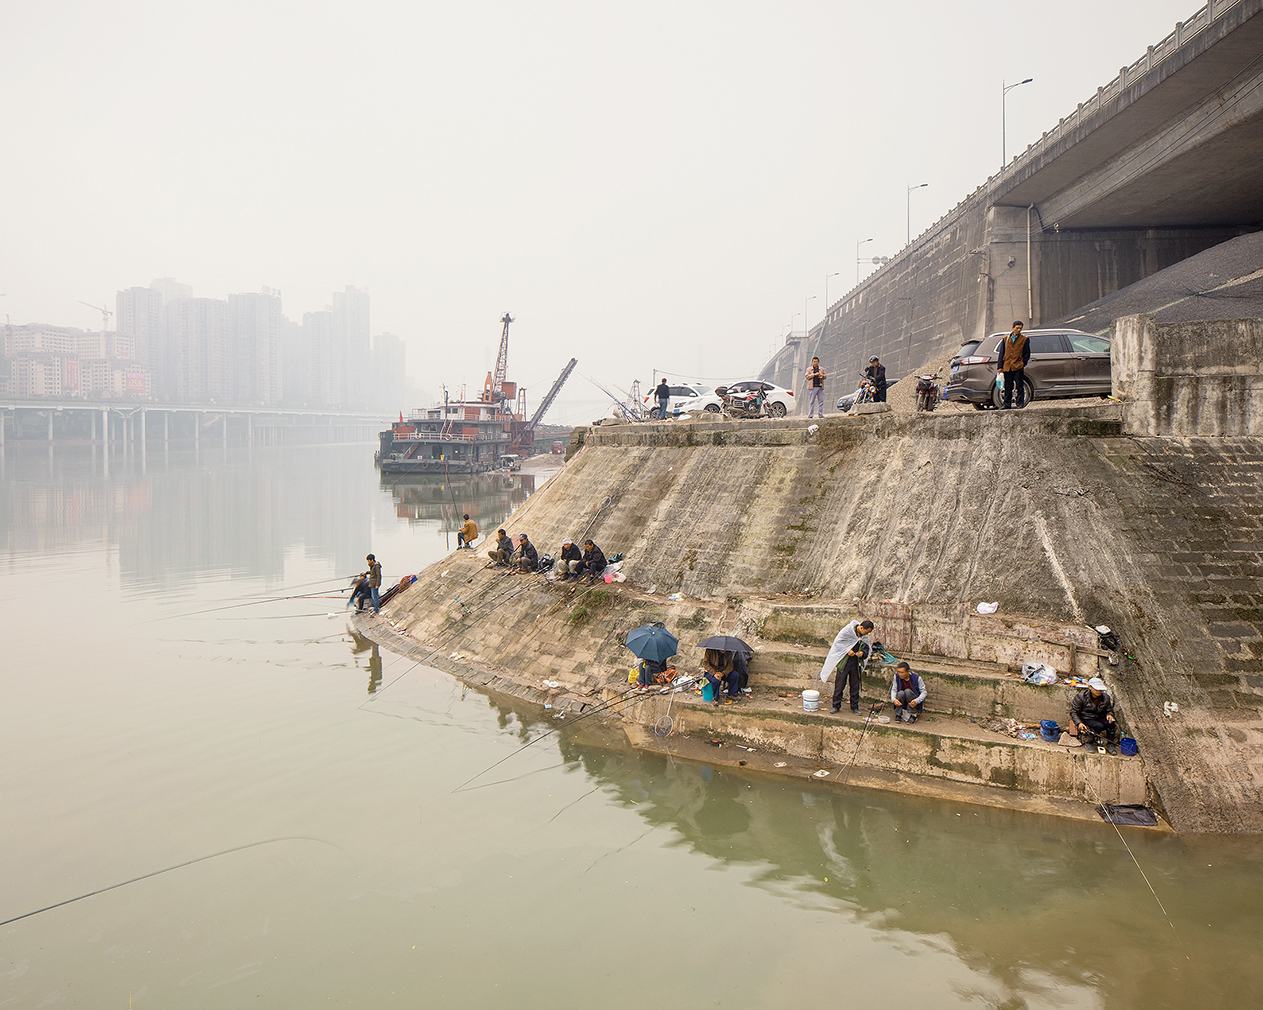 Maciej Leszczynski's City on Rivers photo essay